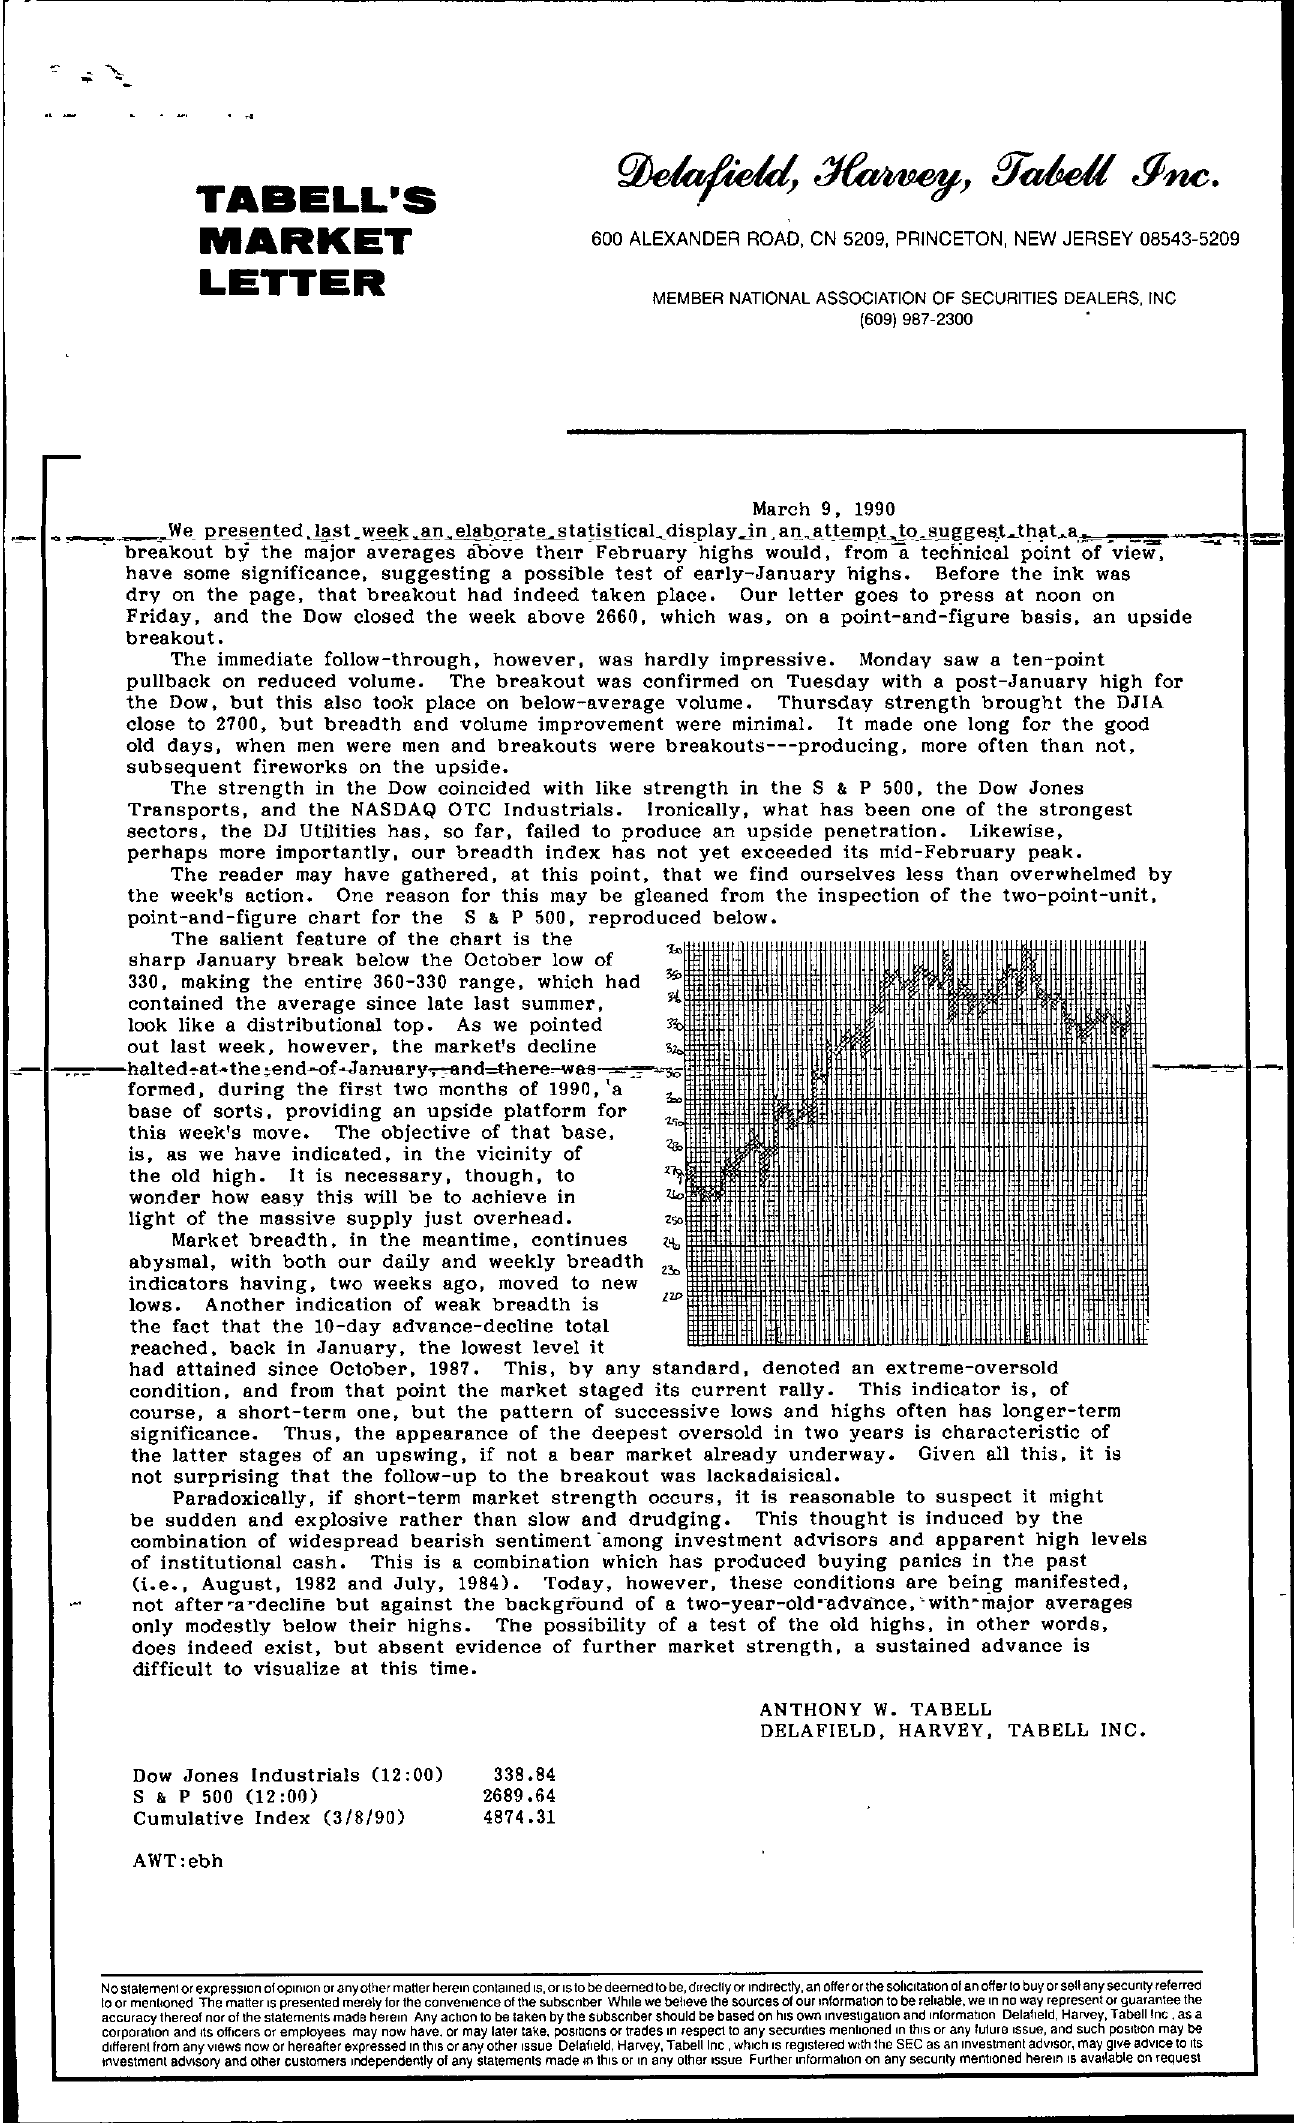 Tabell's Market Letter - March 09, 1990